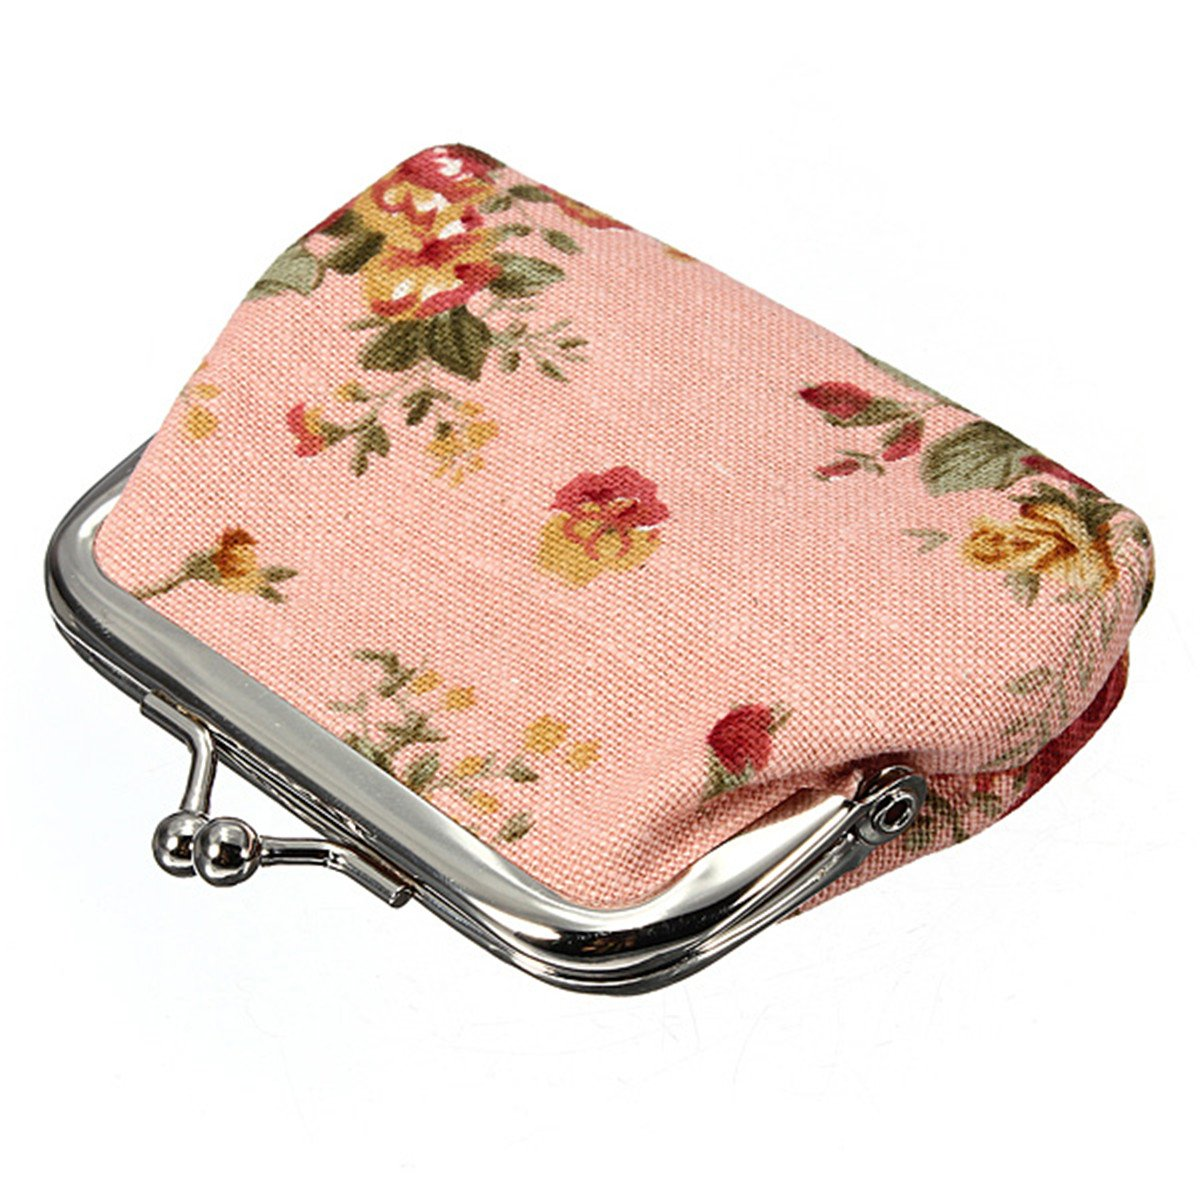 5 pcs of Women Roses Floral Fabric Clip Mini Small Coin Pocket Purse Bag Clutch